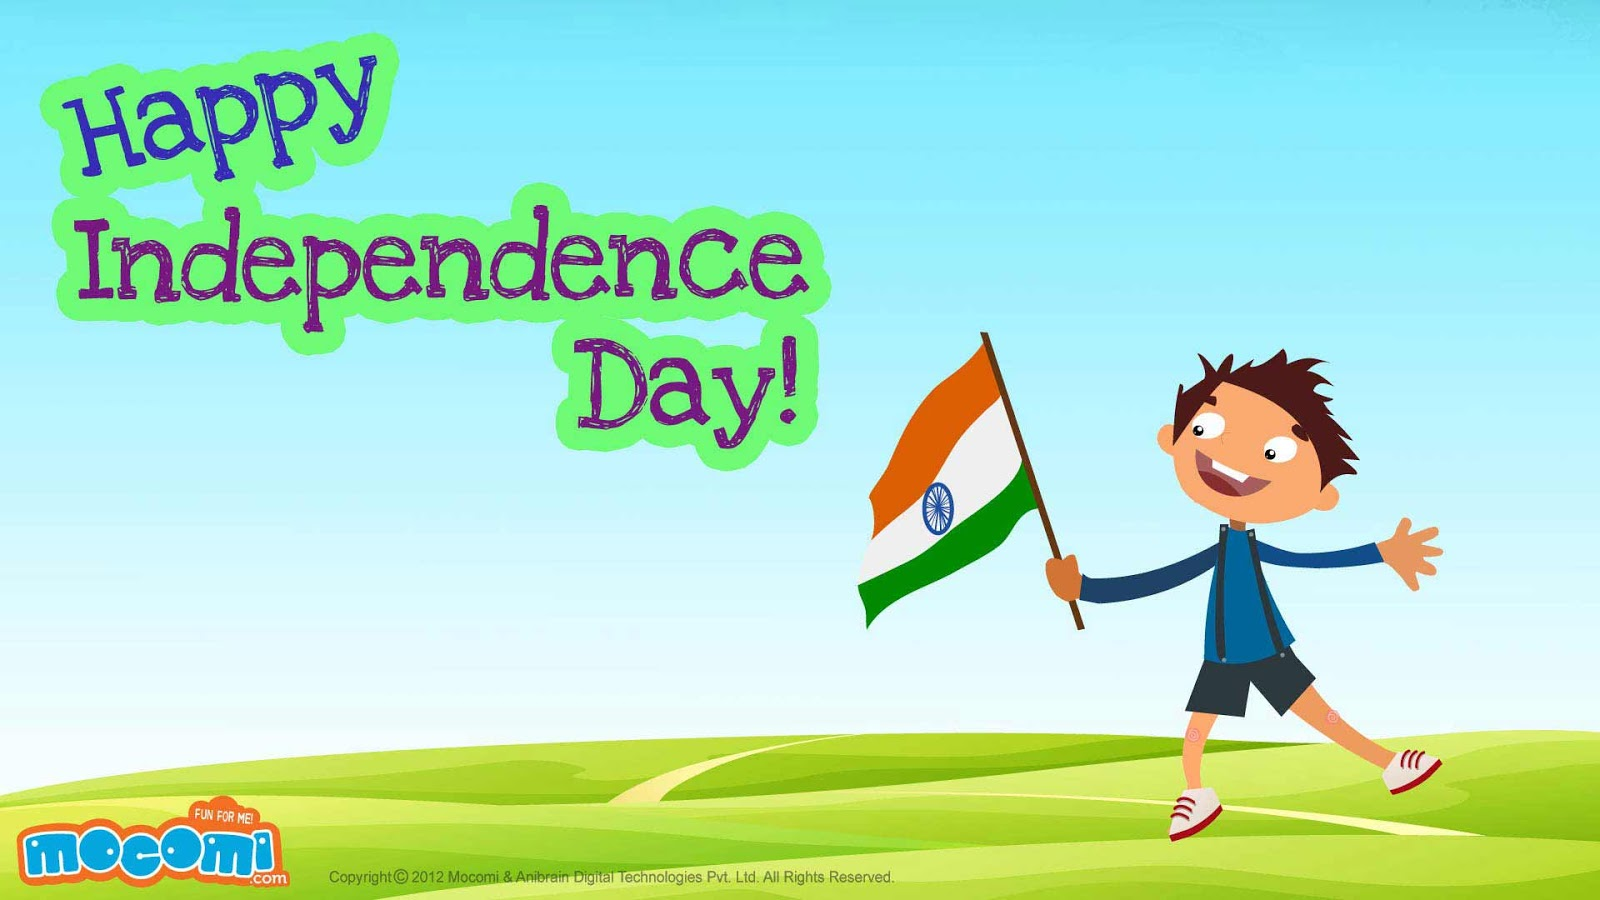 happy independence day essay essay happy happy independence day essay 2016 15 essay